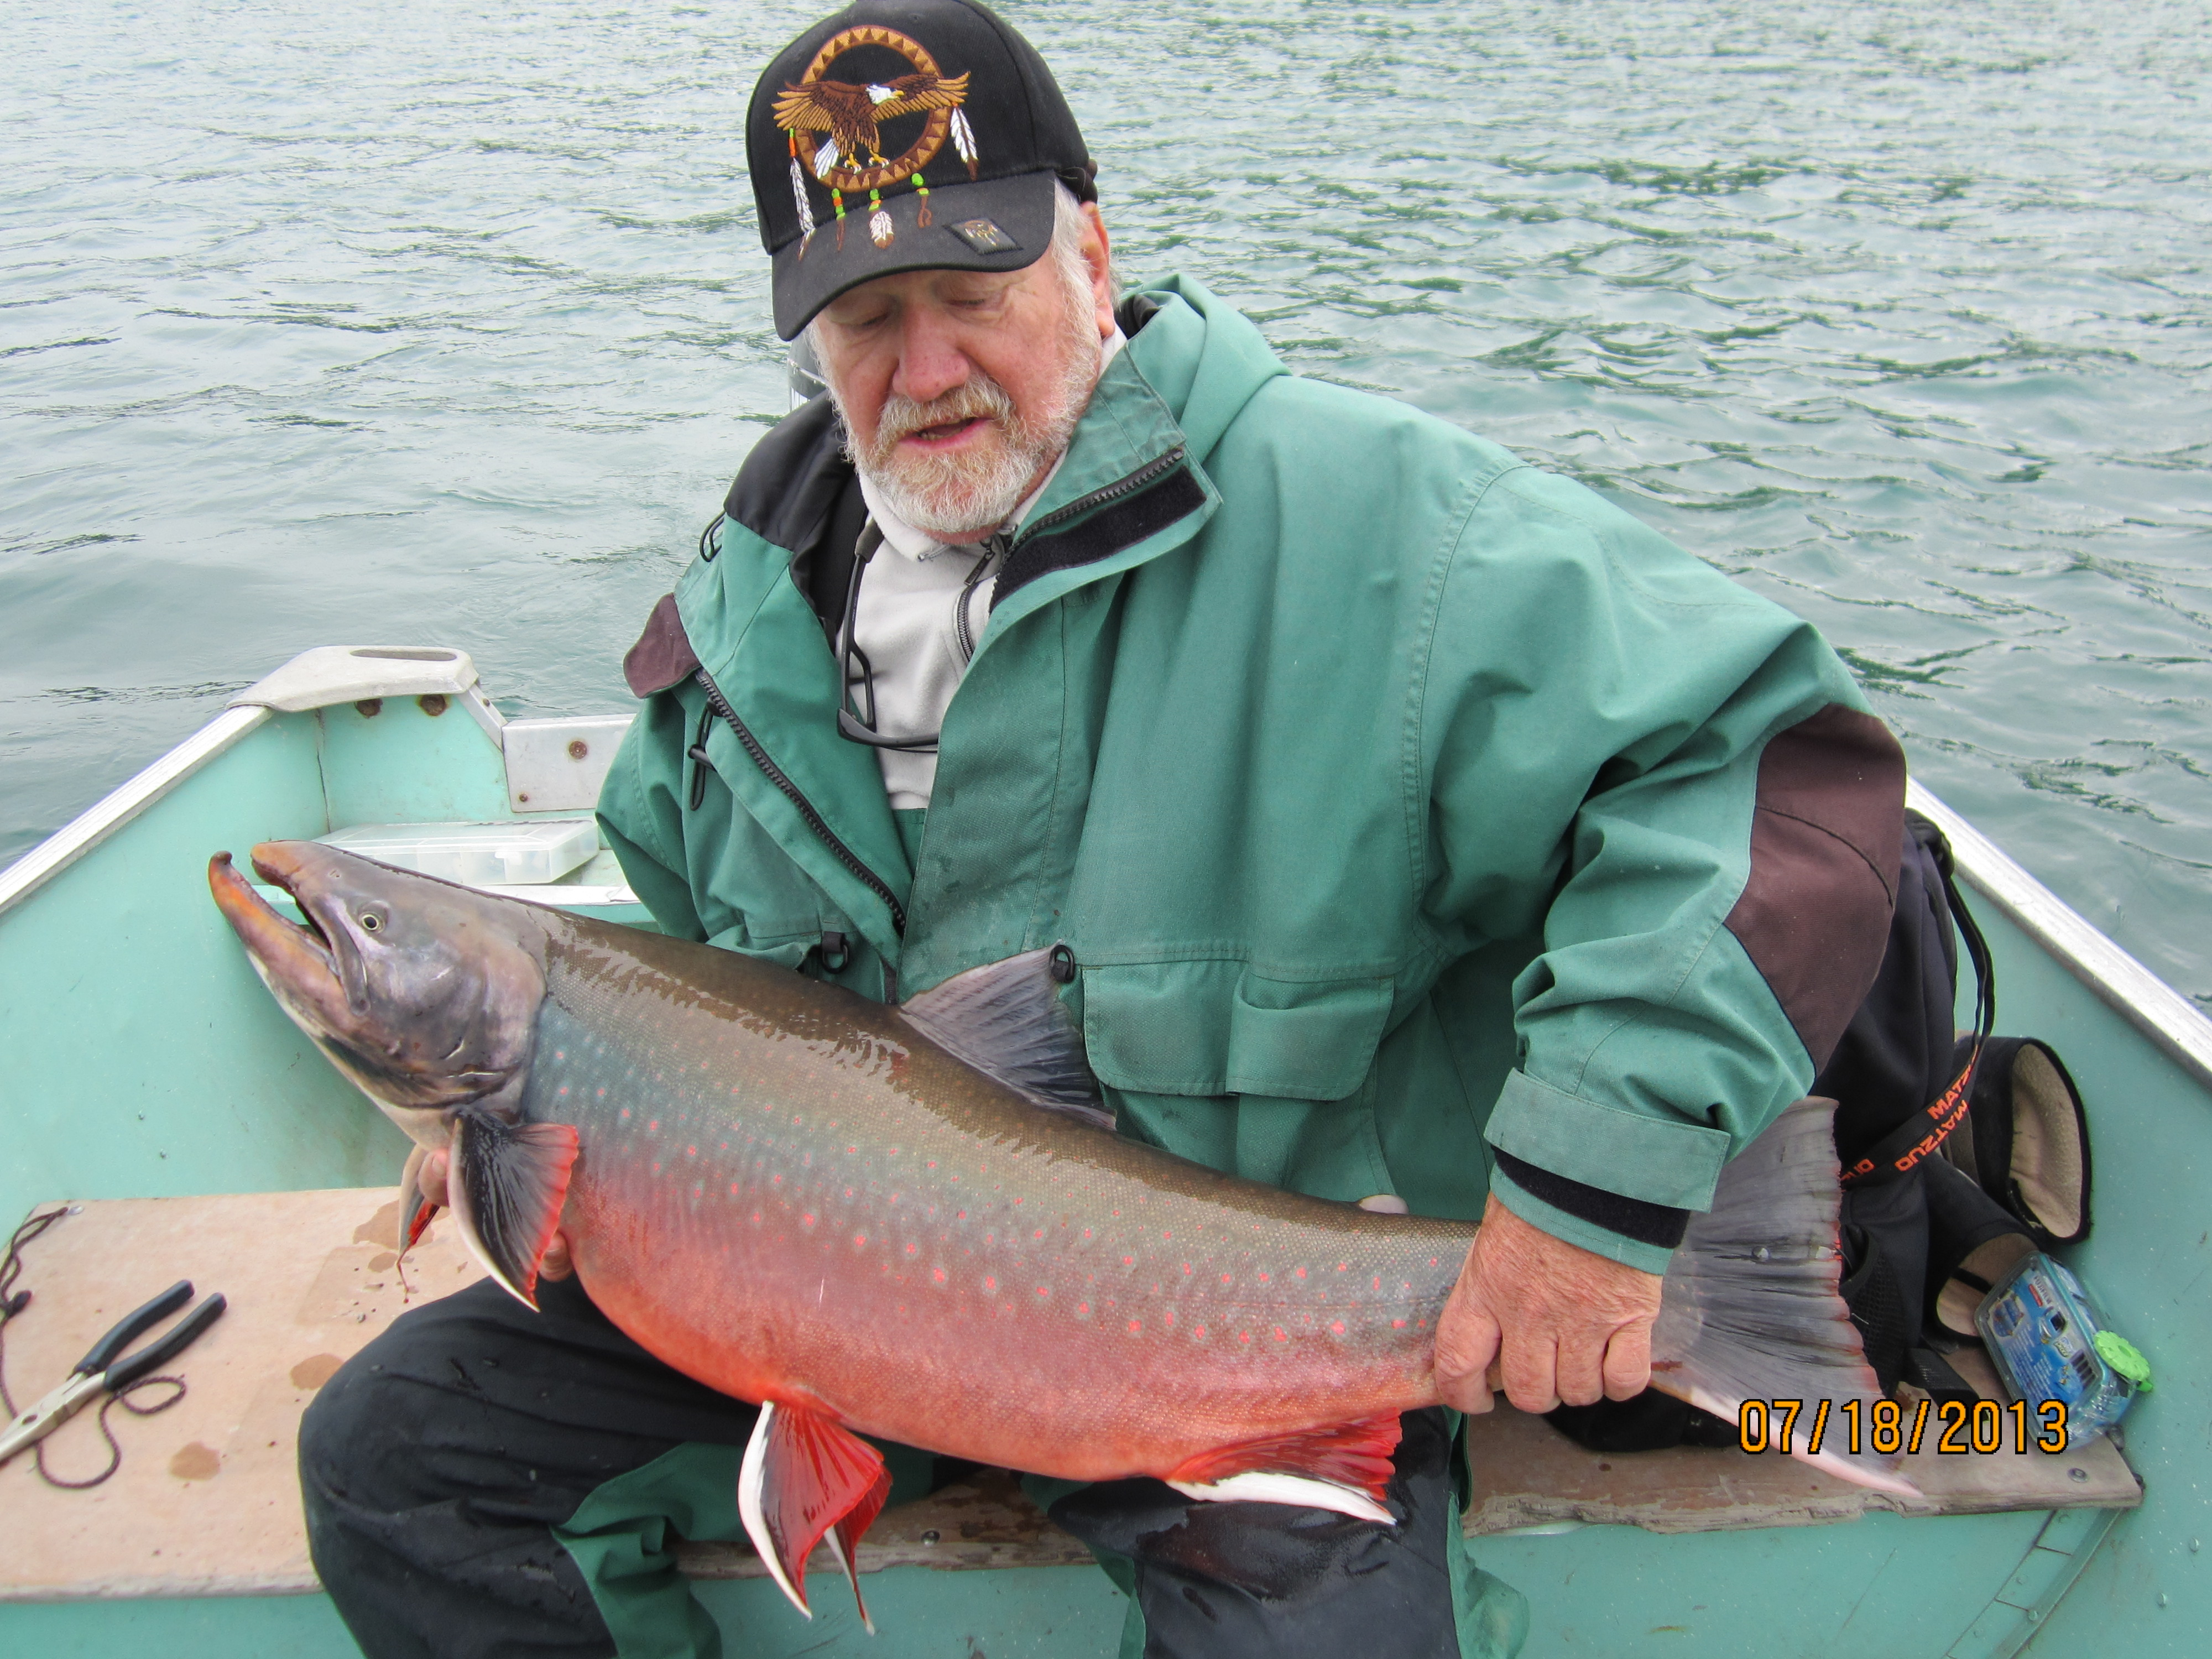 Arctic char from plummer 39 s tree river camp game fish for Arctic char fish